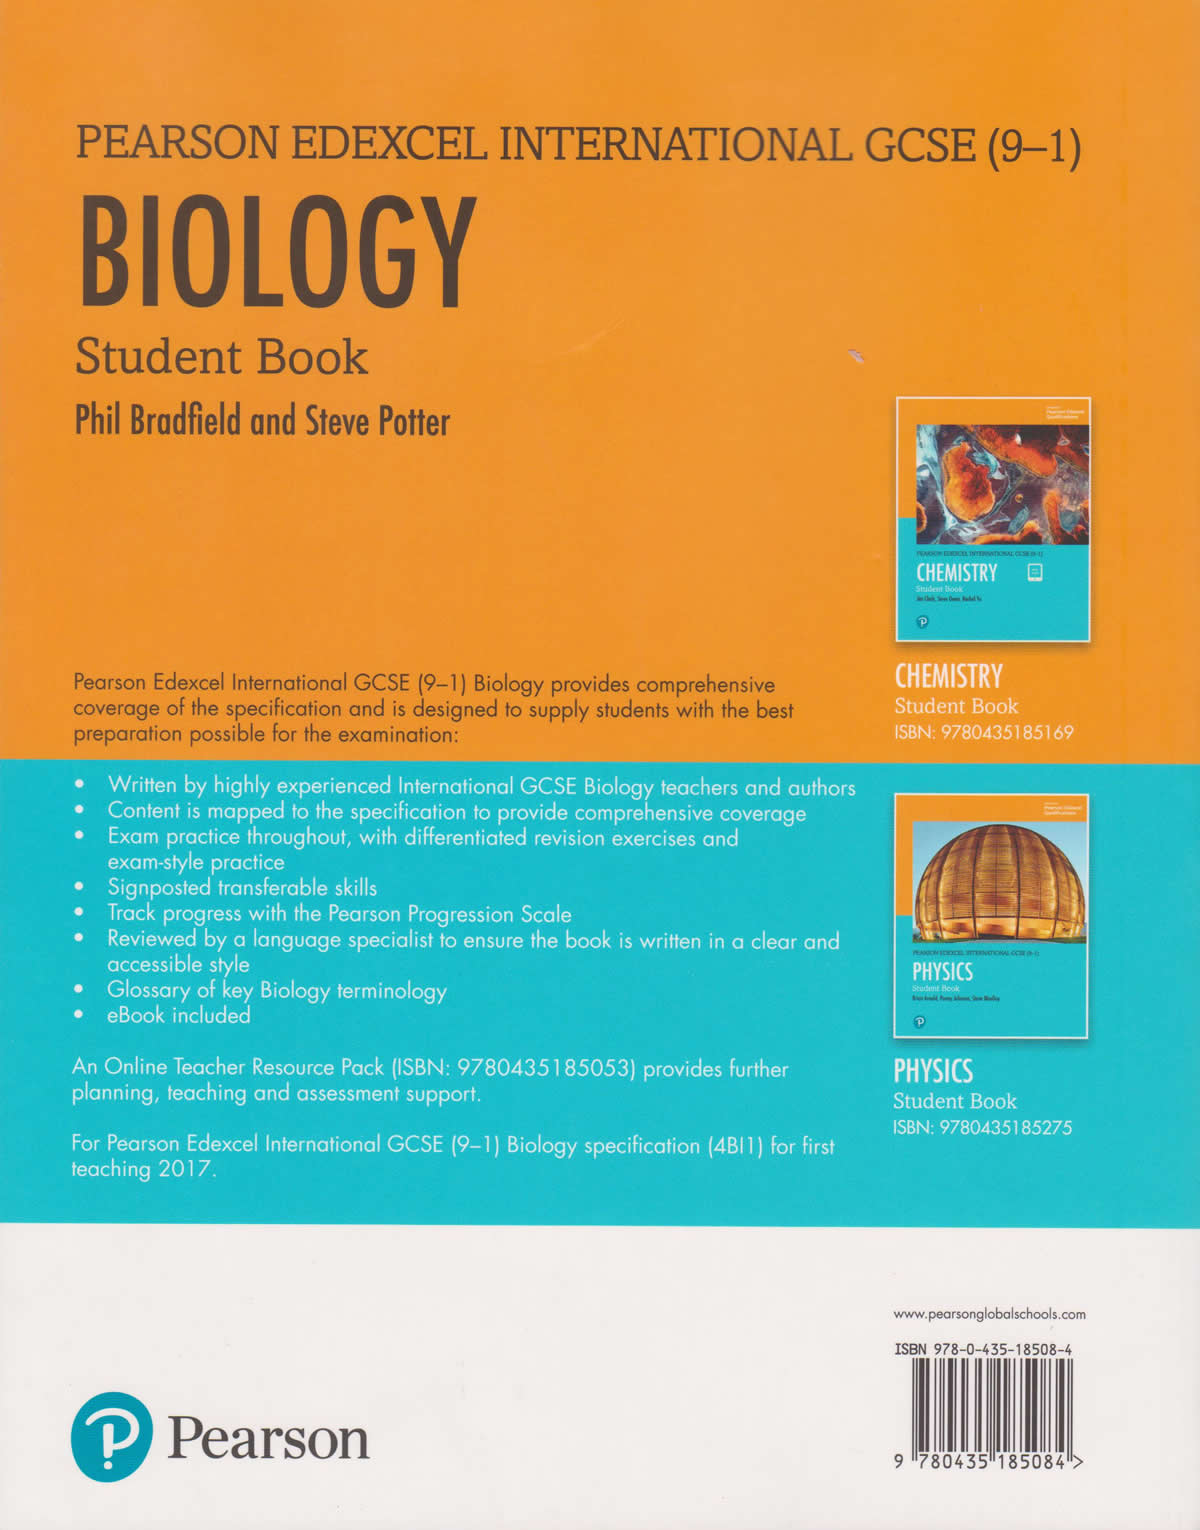 Edexcel International GCSE (9-1) Biology Student Book | Books, Stationery,  Computers, Laptops and more  Buy online and get free delivery on orders